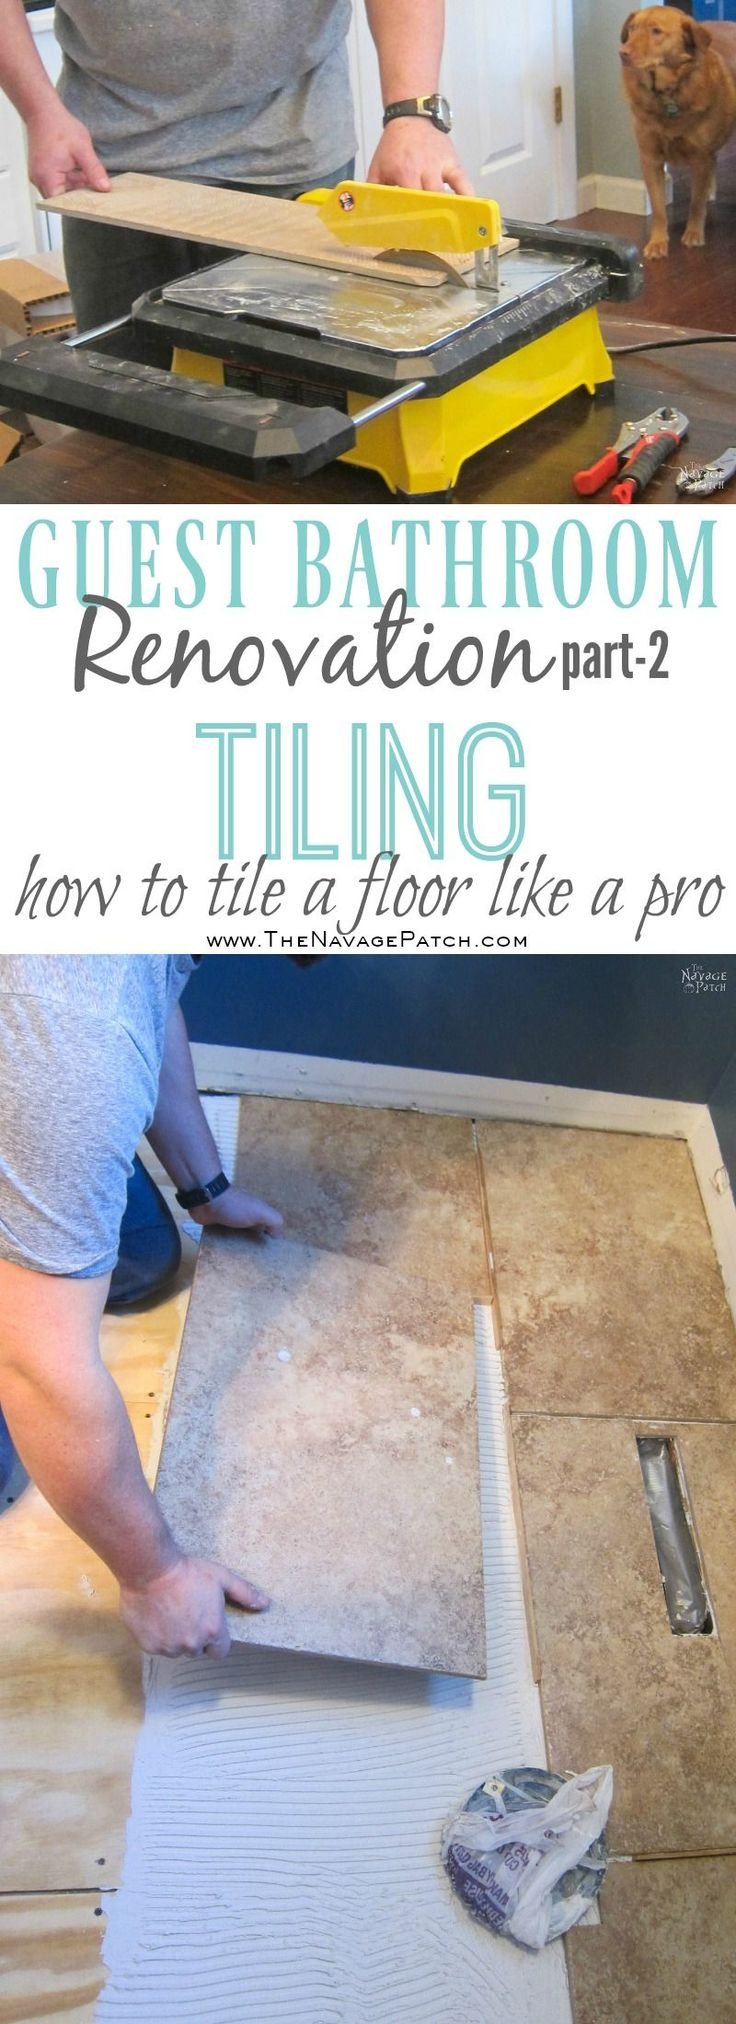 Best 25 how to repair tiles ideas on pinterest how to grout guest bathroom renovation how to tile a floor like a pro diy floor tiling how to cut tiles how to repair broken ceramic tiles how to lay dailygadgetfo Choice Image